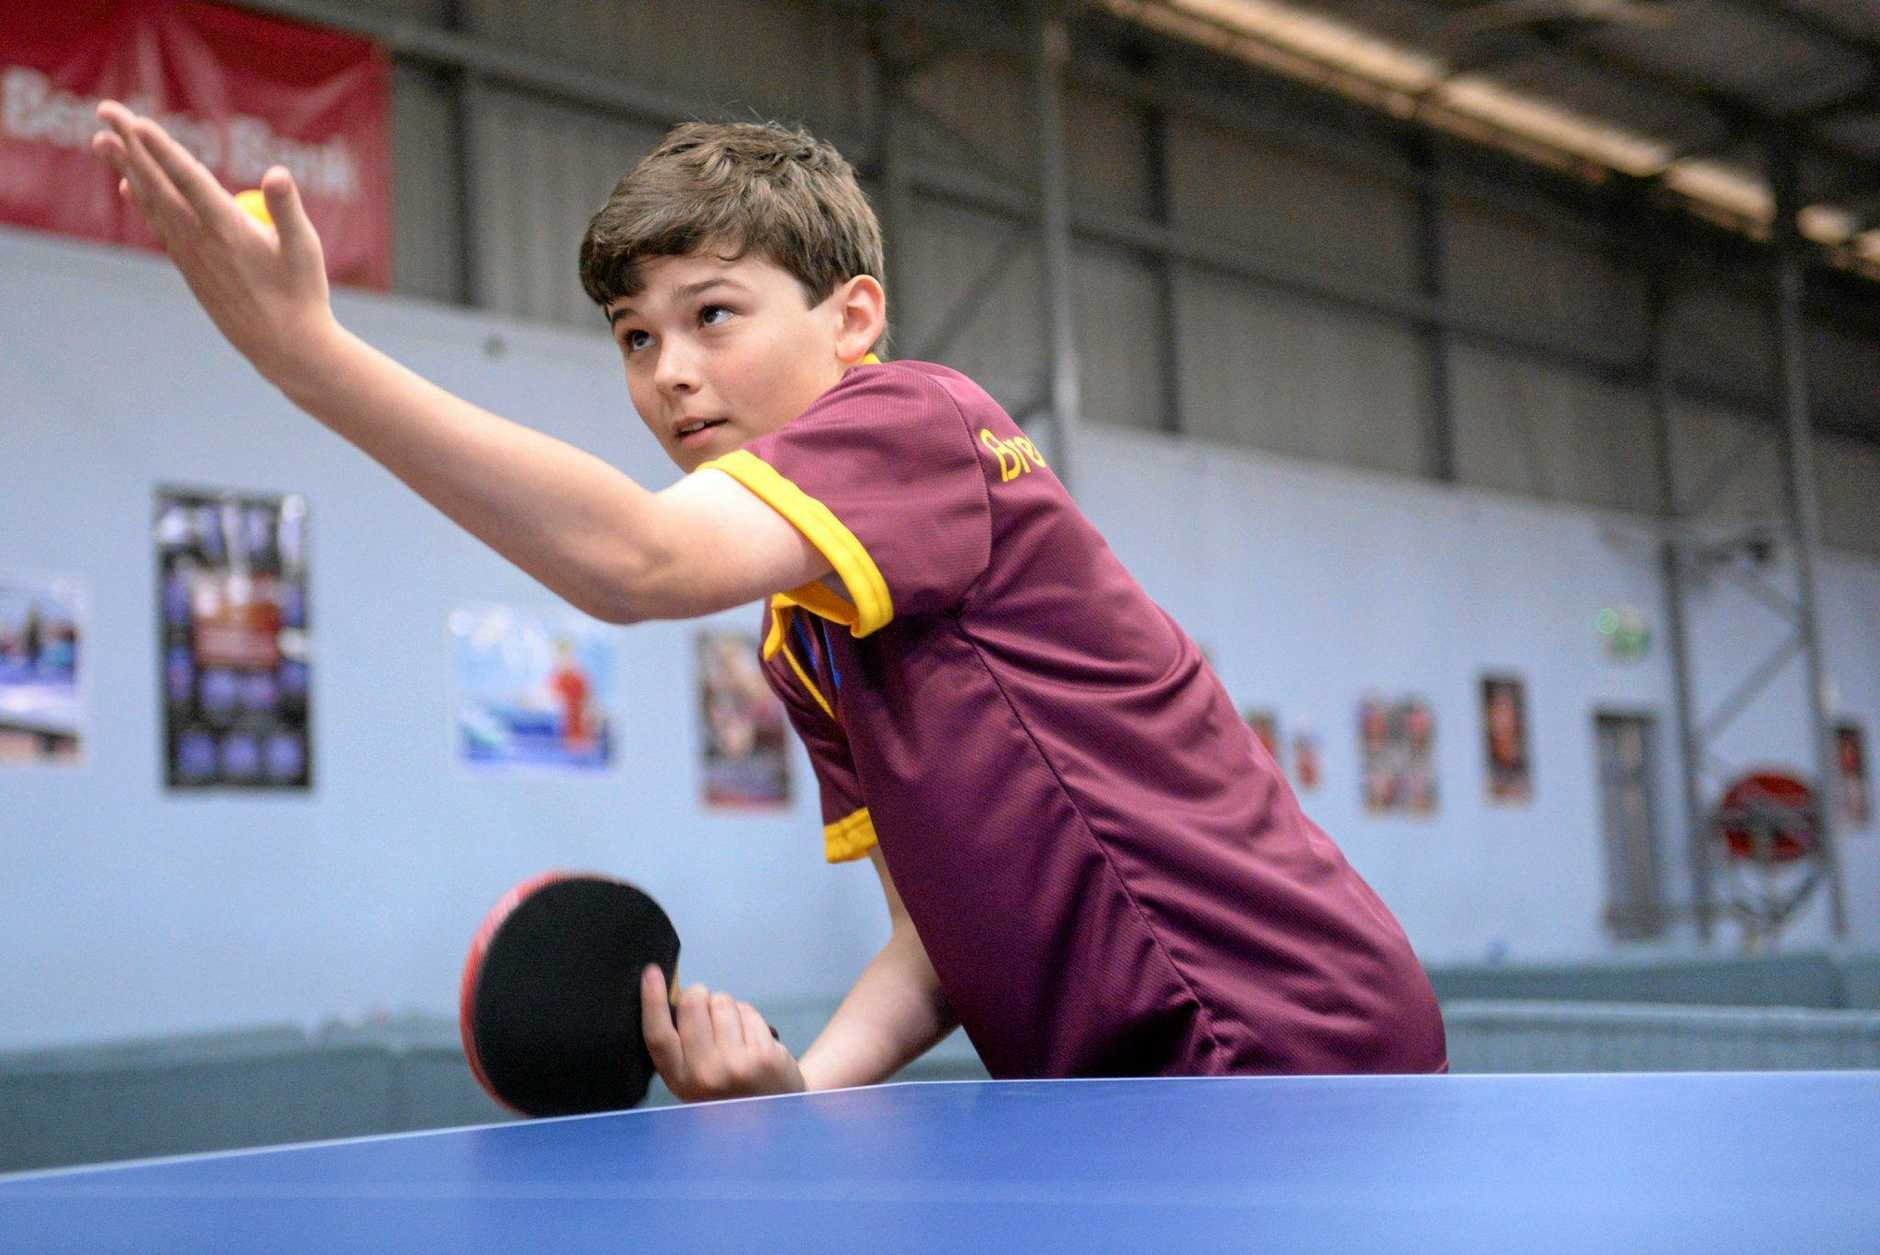 TABLE TENNIS: Brendan Connolly came from a game down to beat Shain Green.